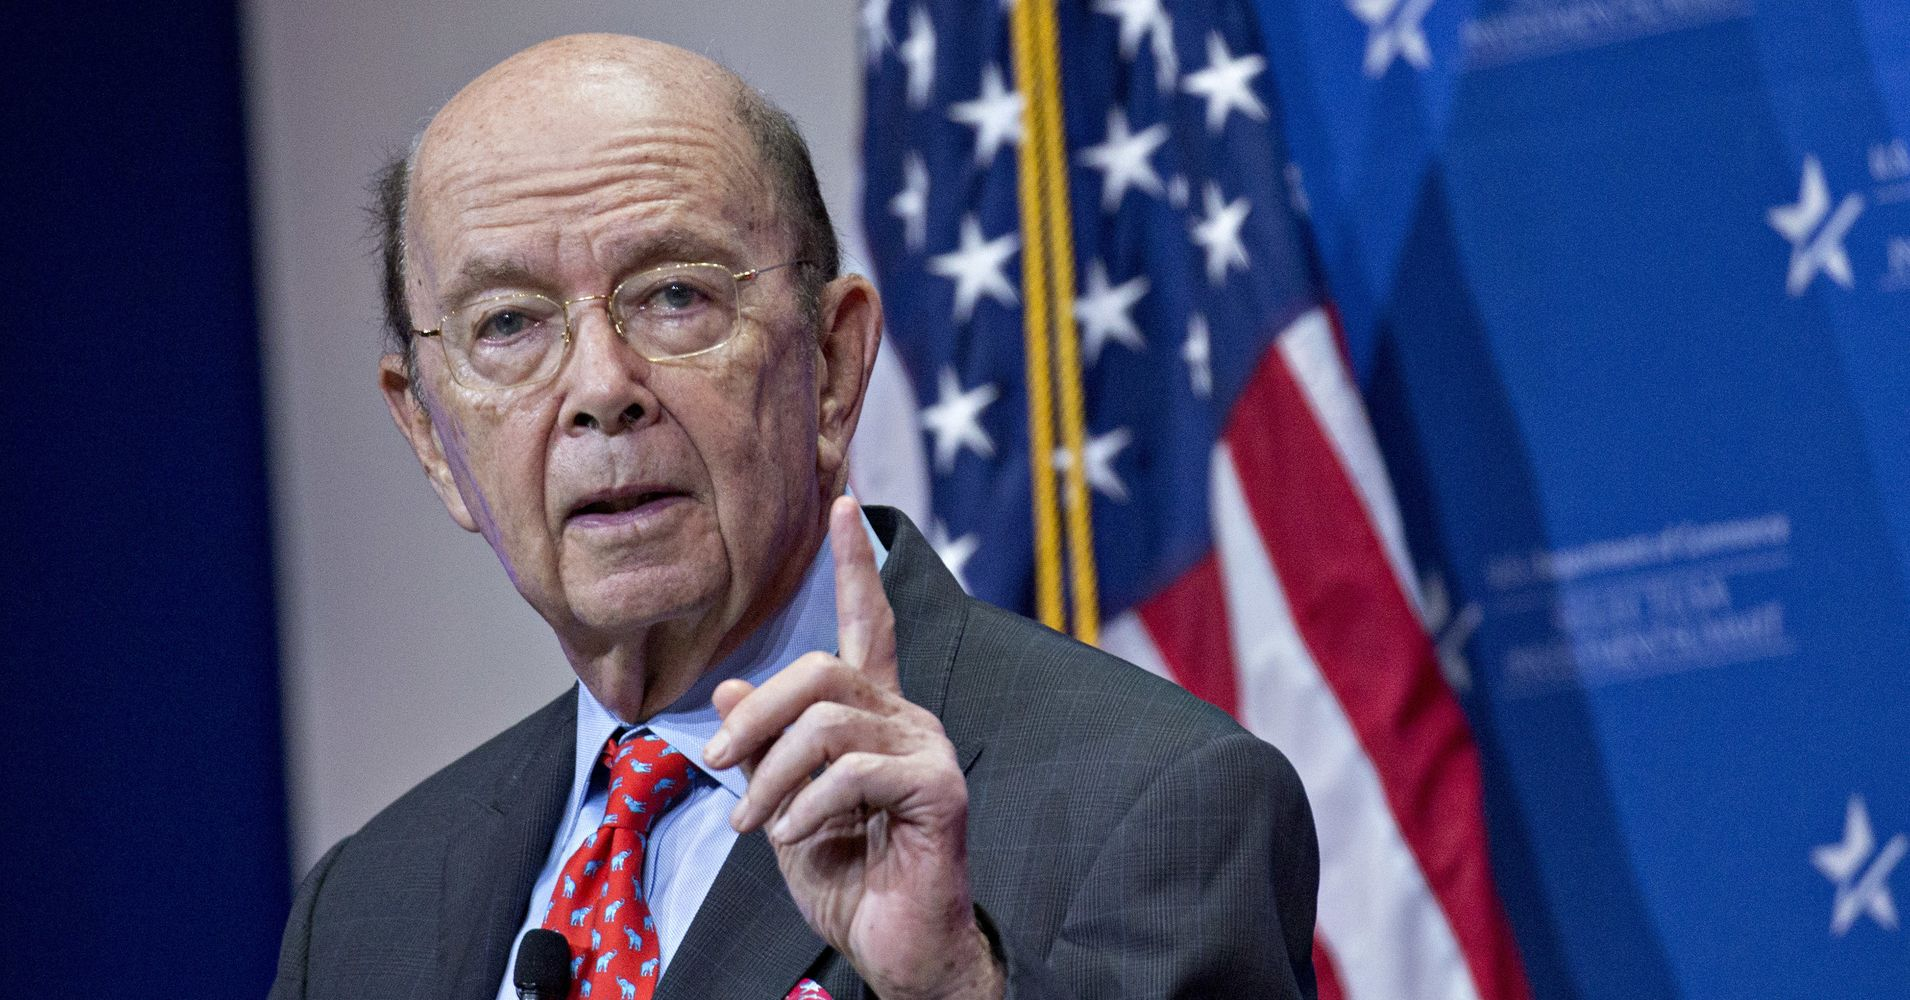 Wilbur Ross Contradicts Trump Administration Rationale For Census Citizenship Question